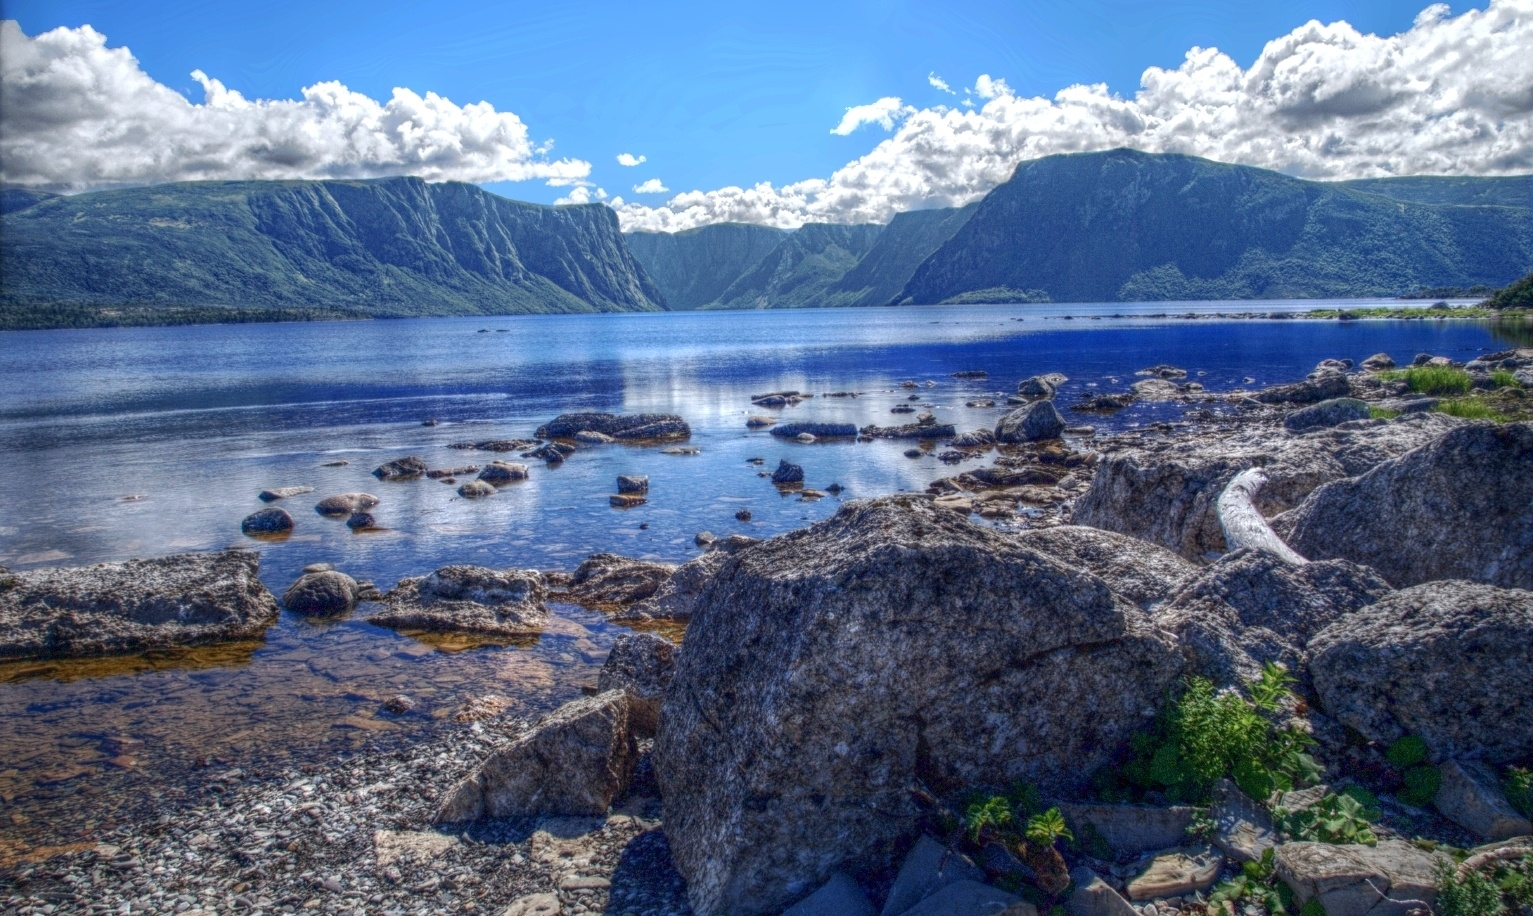 Fjord on Western Brook pond in gros morne